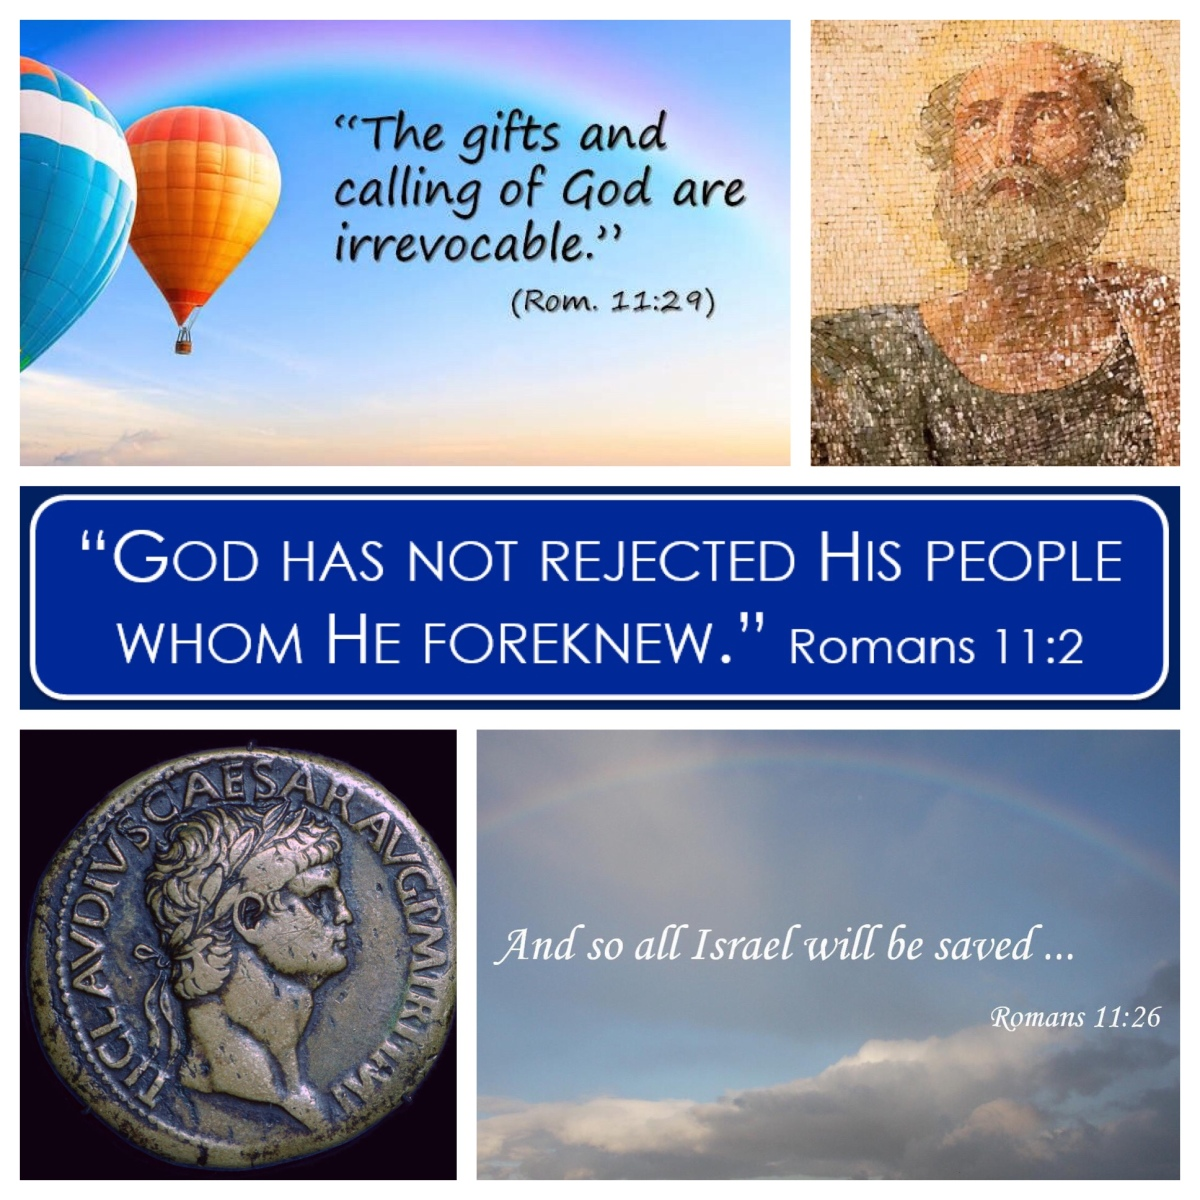 God has not rejected his people. All Israel will be saved. (Rom 11)